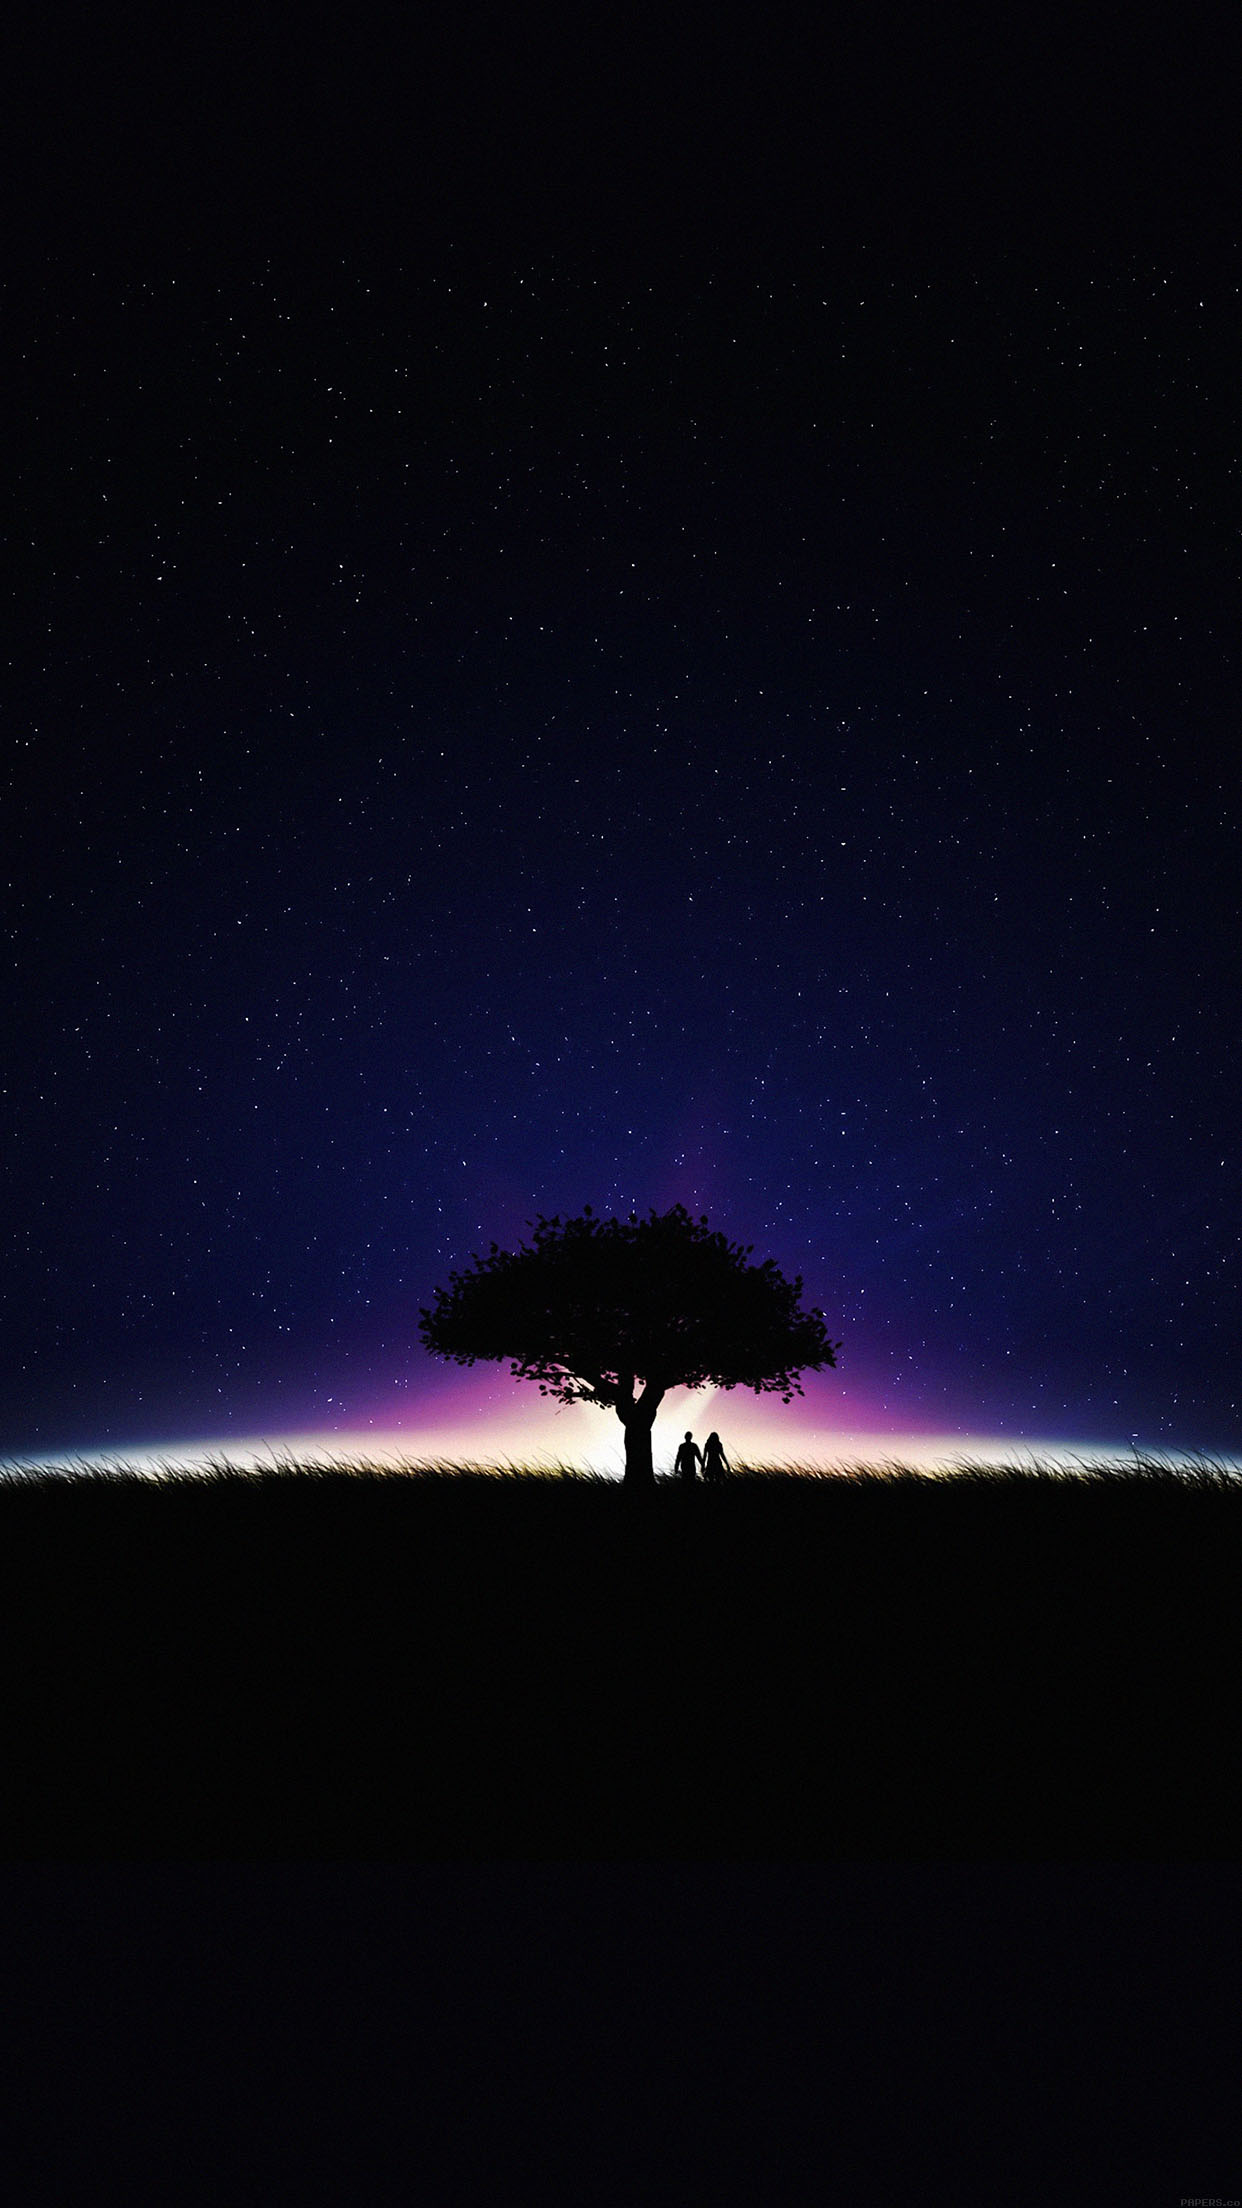 Cute Girl Pictures Hd Wallpapers Ab99 Wallpaper Space Night Starry Star Dark Papers Co